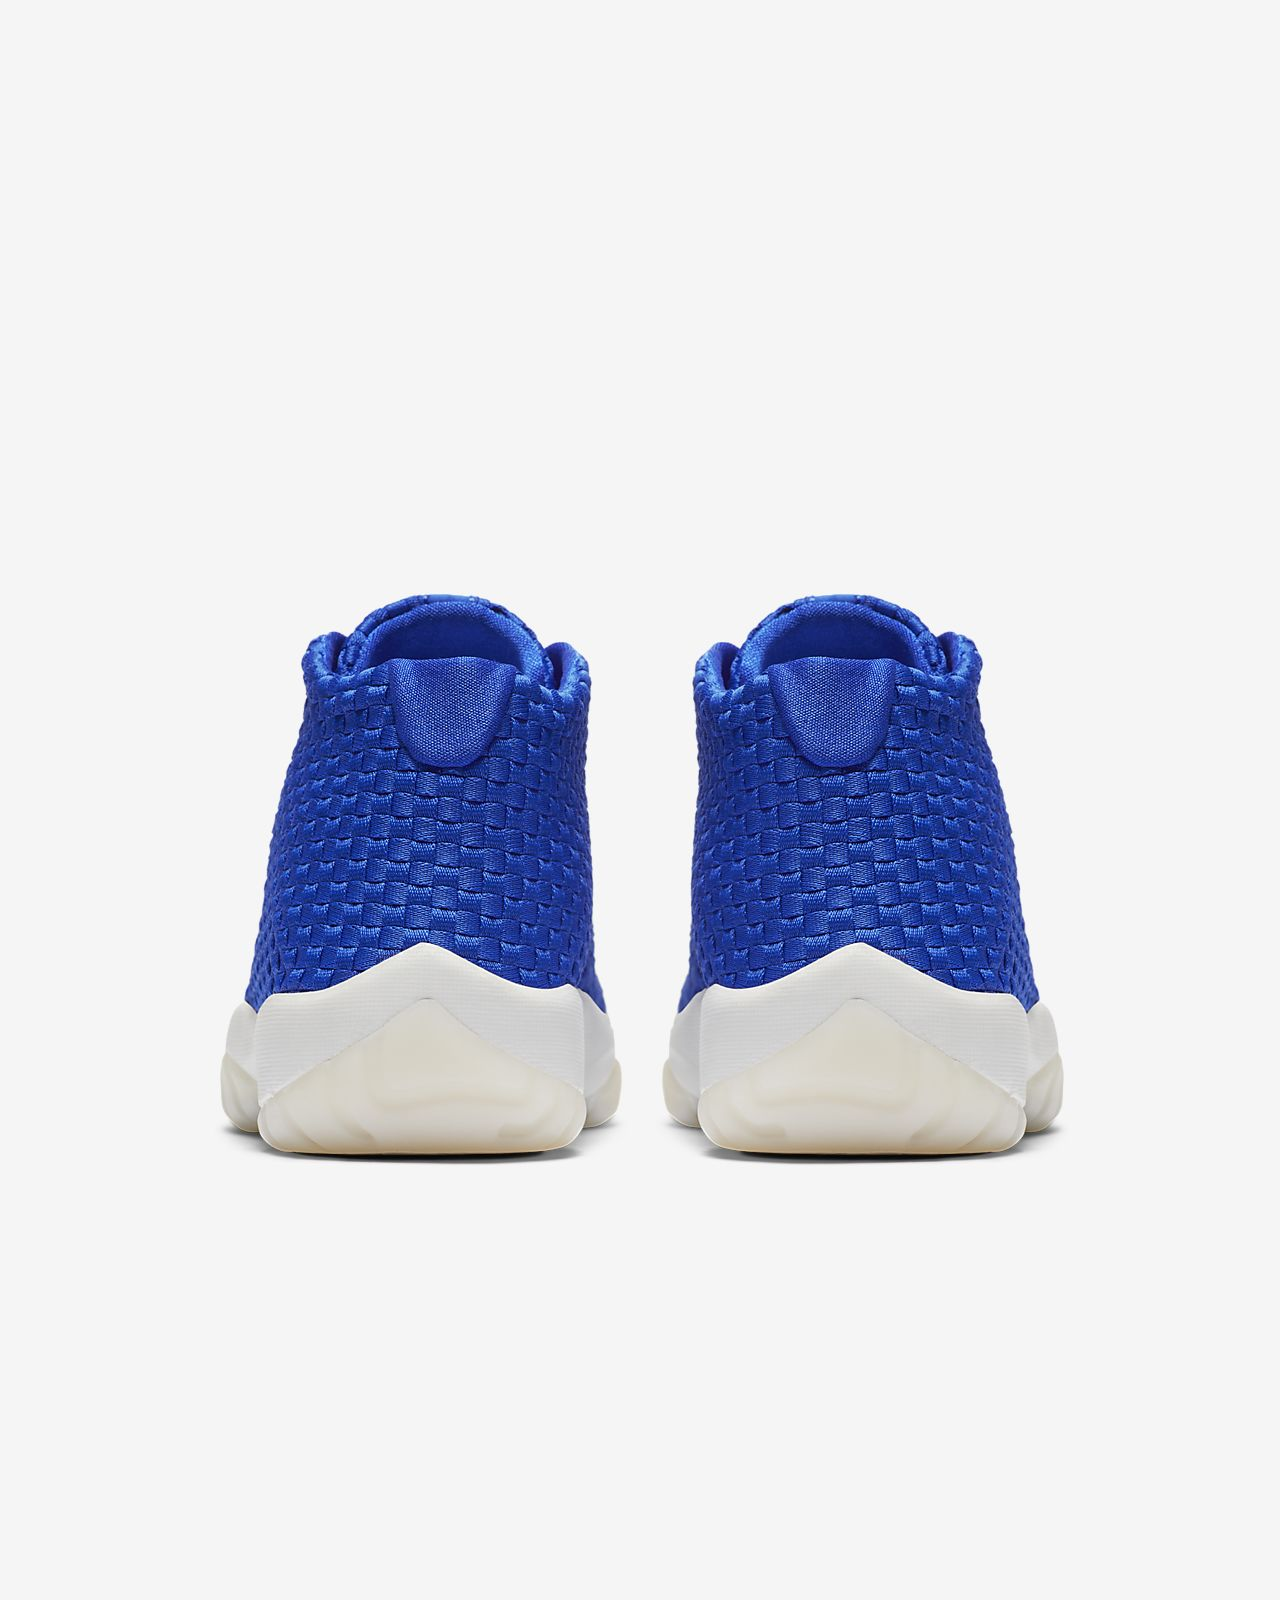 online retailer 7c481 f2781 Low Resolution Air Jordan Future Men's Shoe Air Jordan Future Men's Shoe